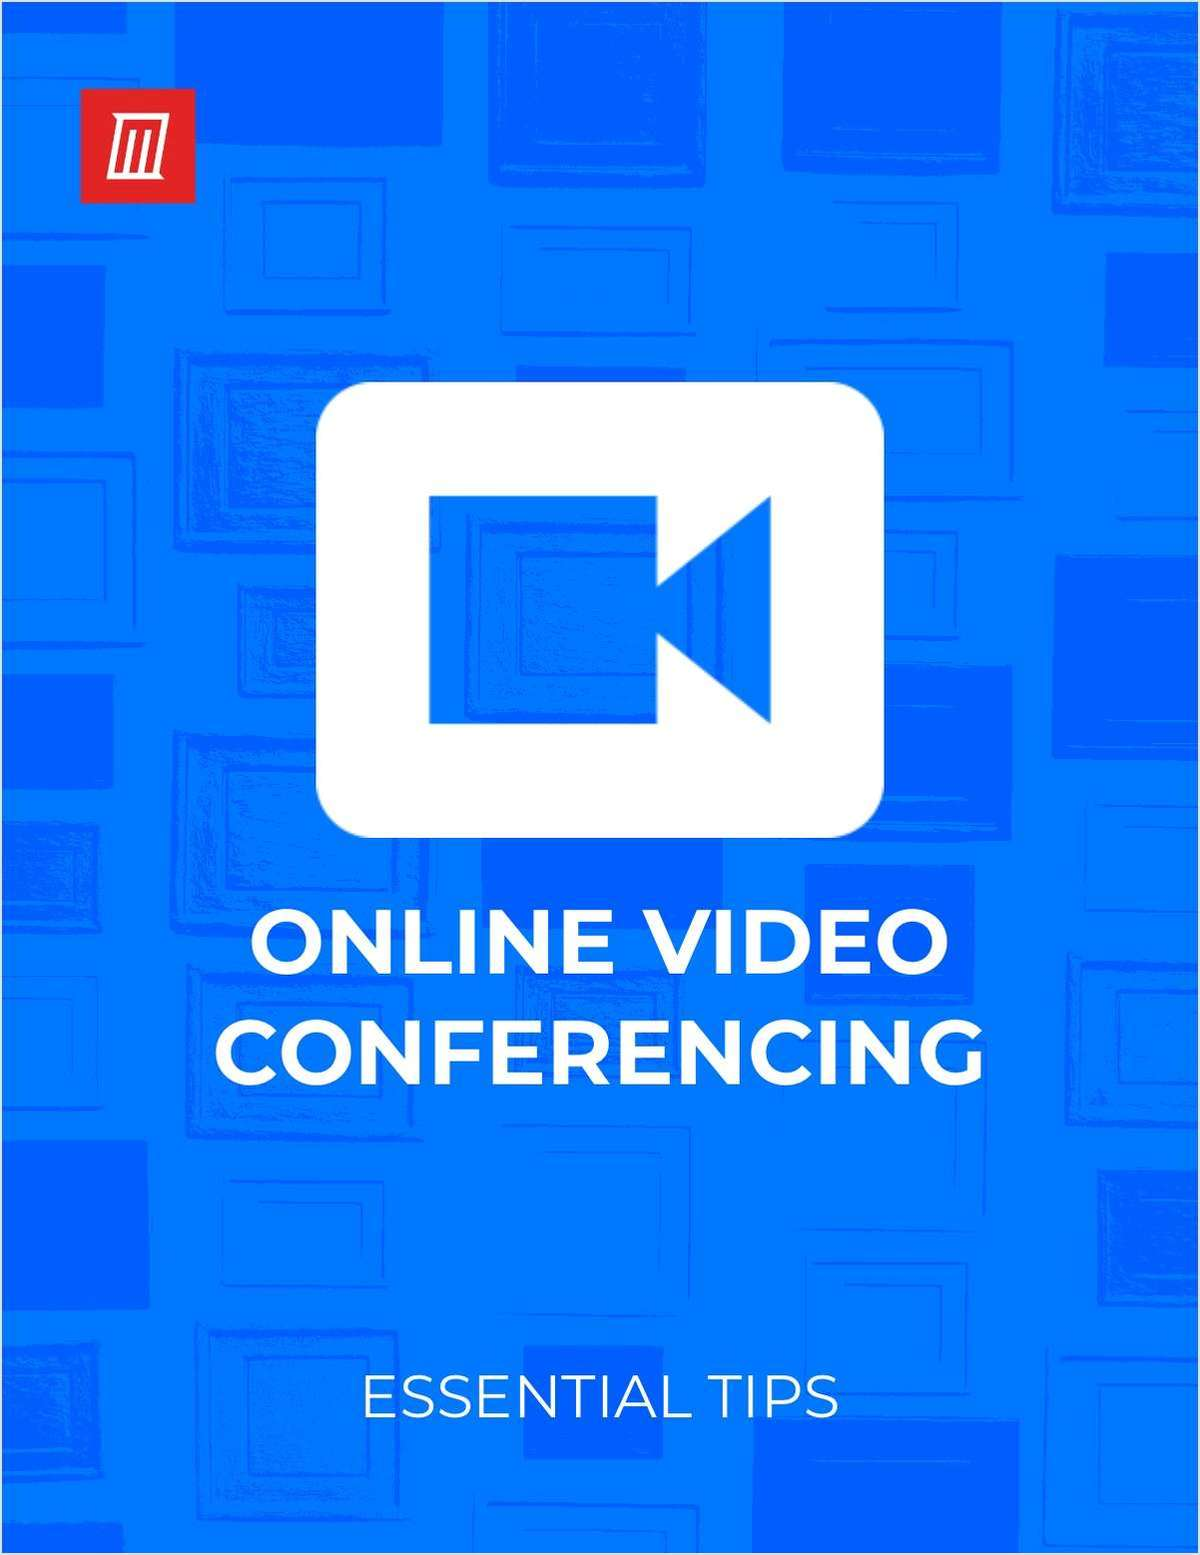 Essential Tips for Online Video Conferencing